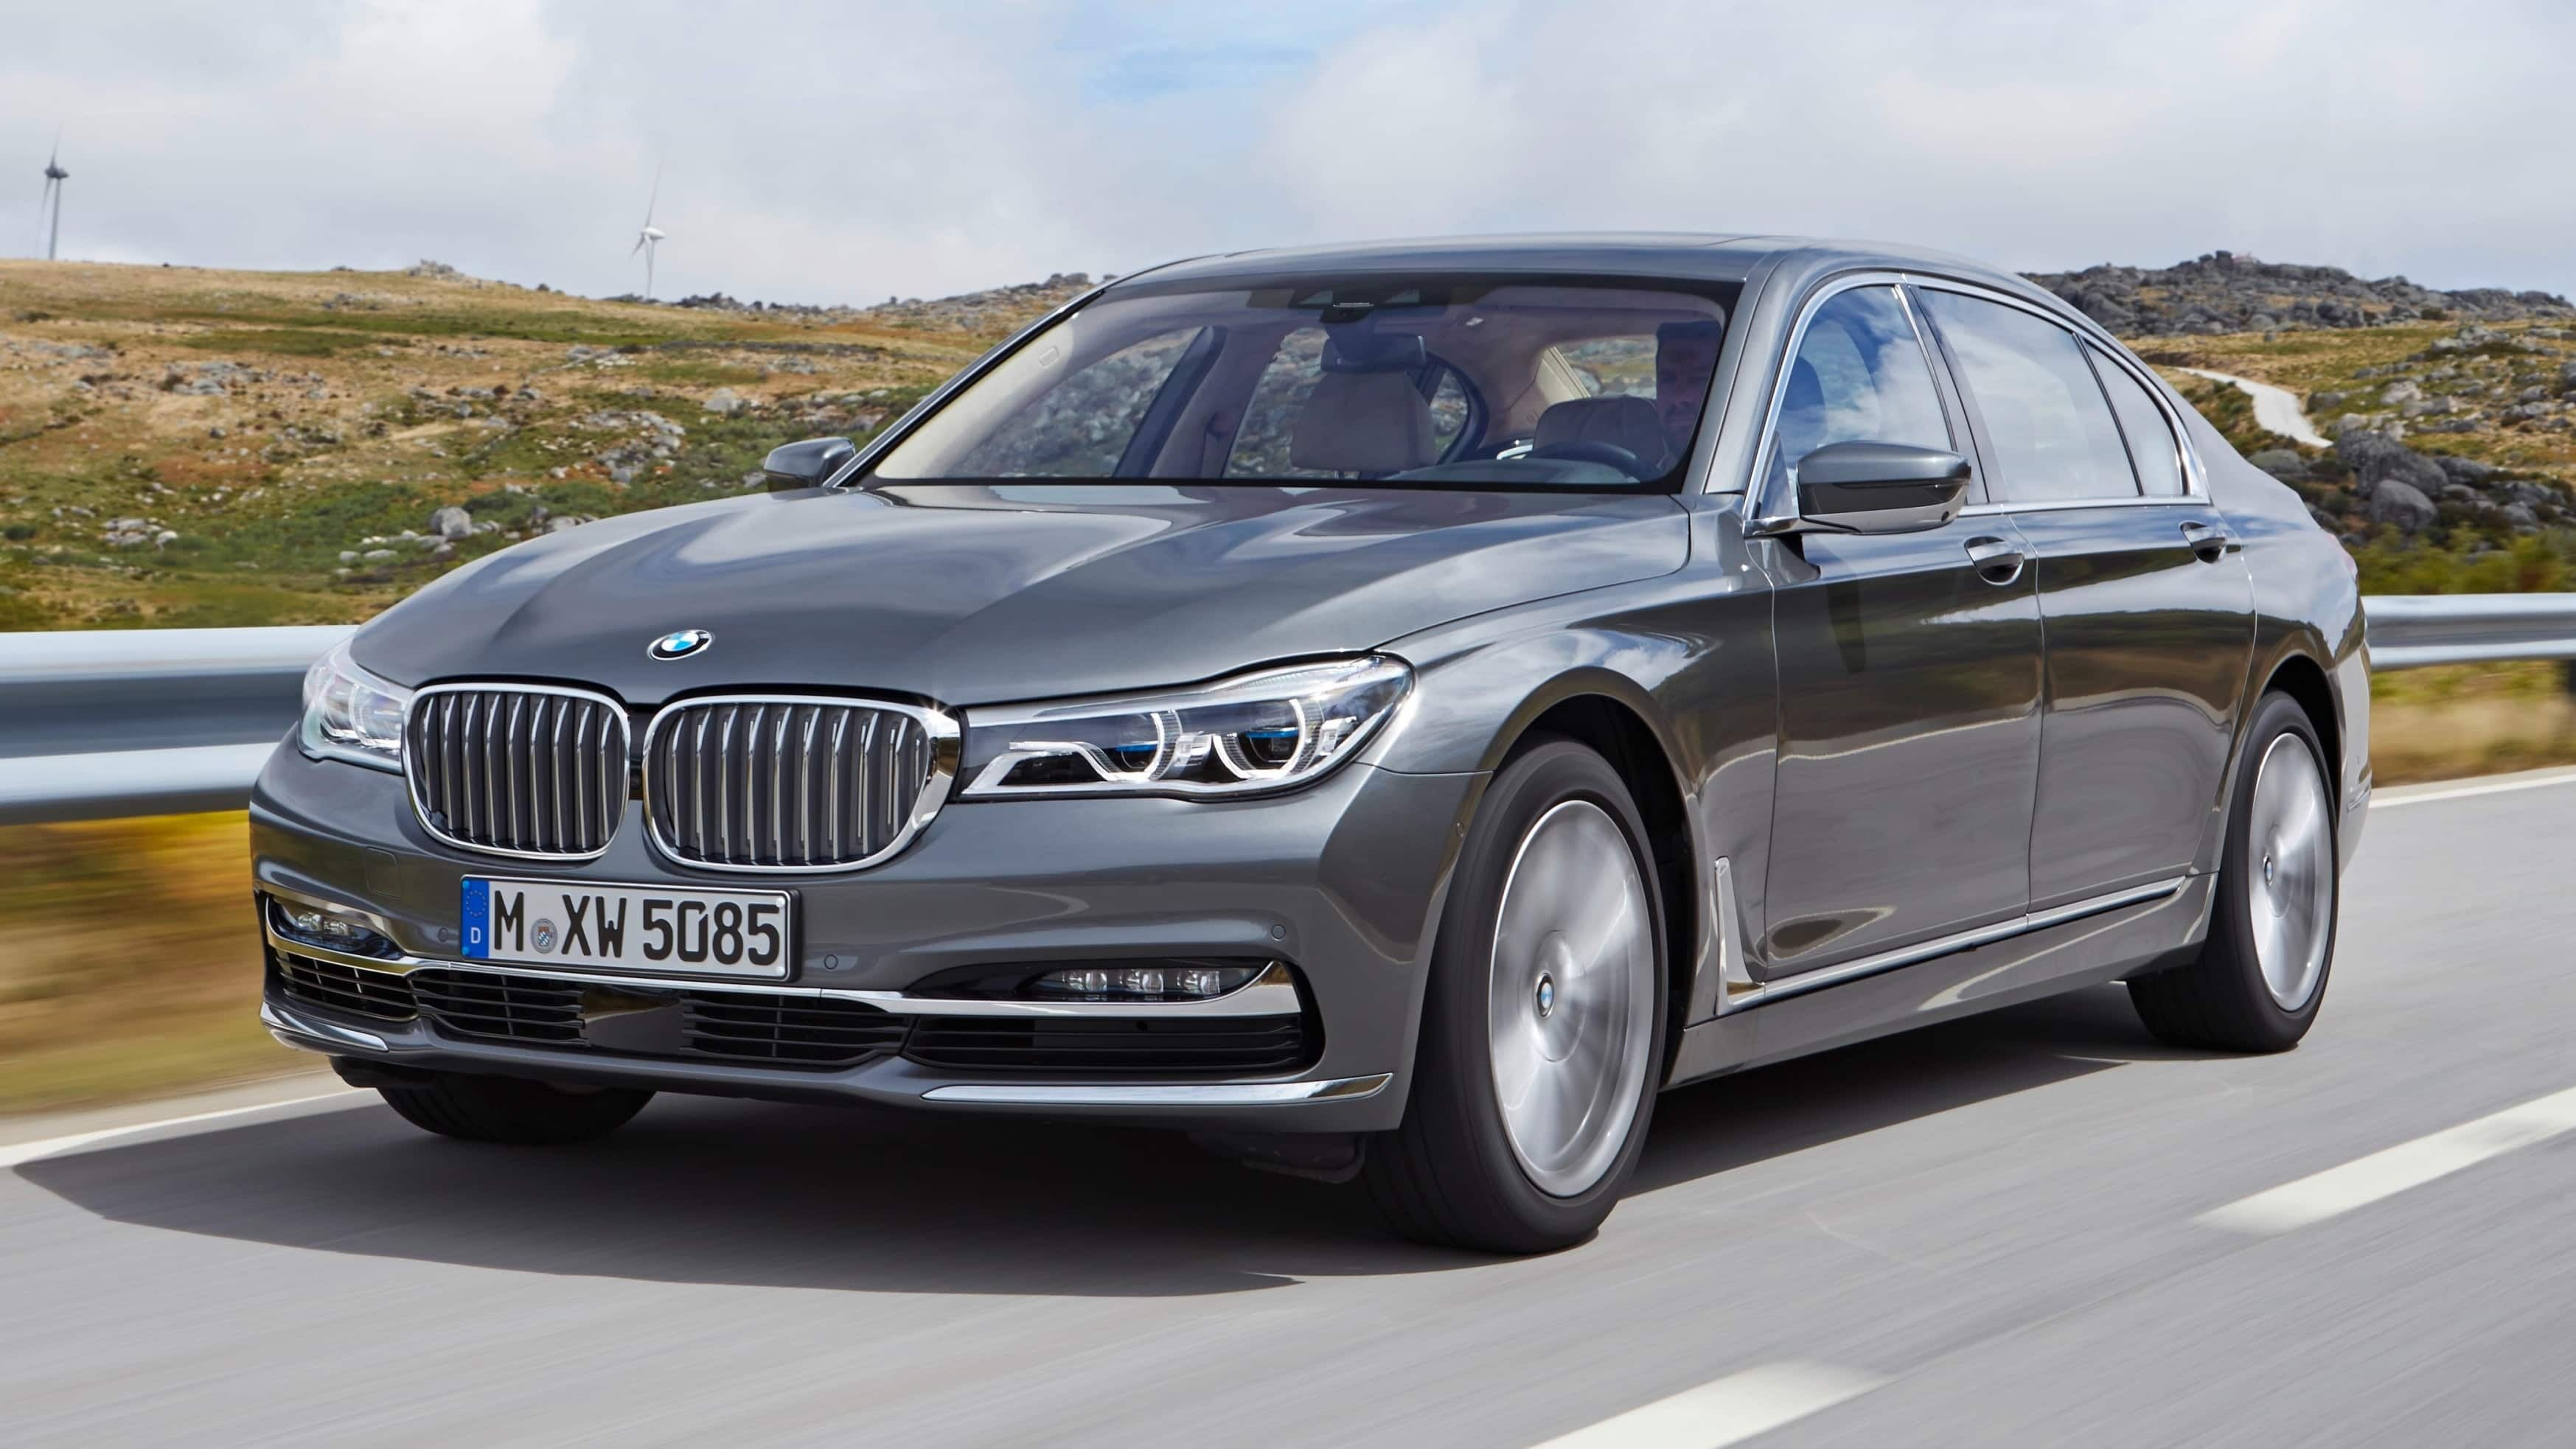 Latest Prices Of All Bmw Cars To Rise From April 2017 Find New Free Download